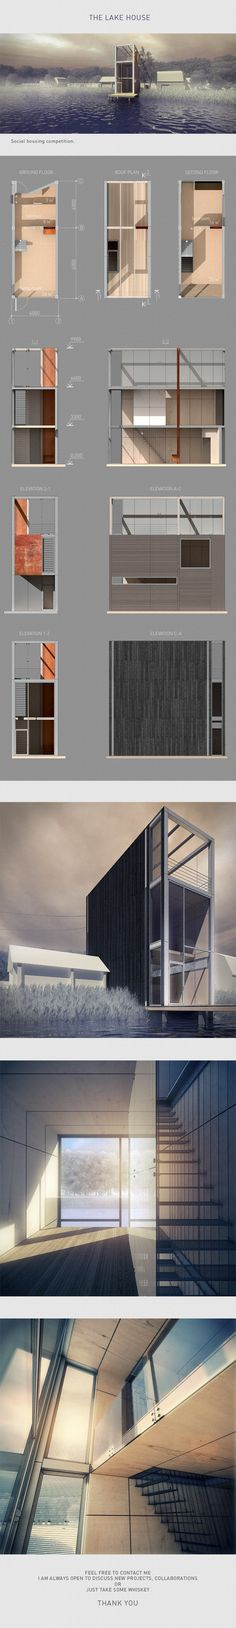 The lake house by Nikita Kolbovskiy, via Behance